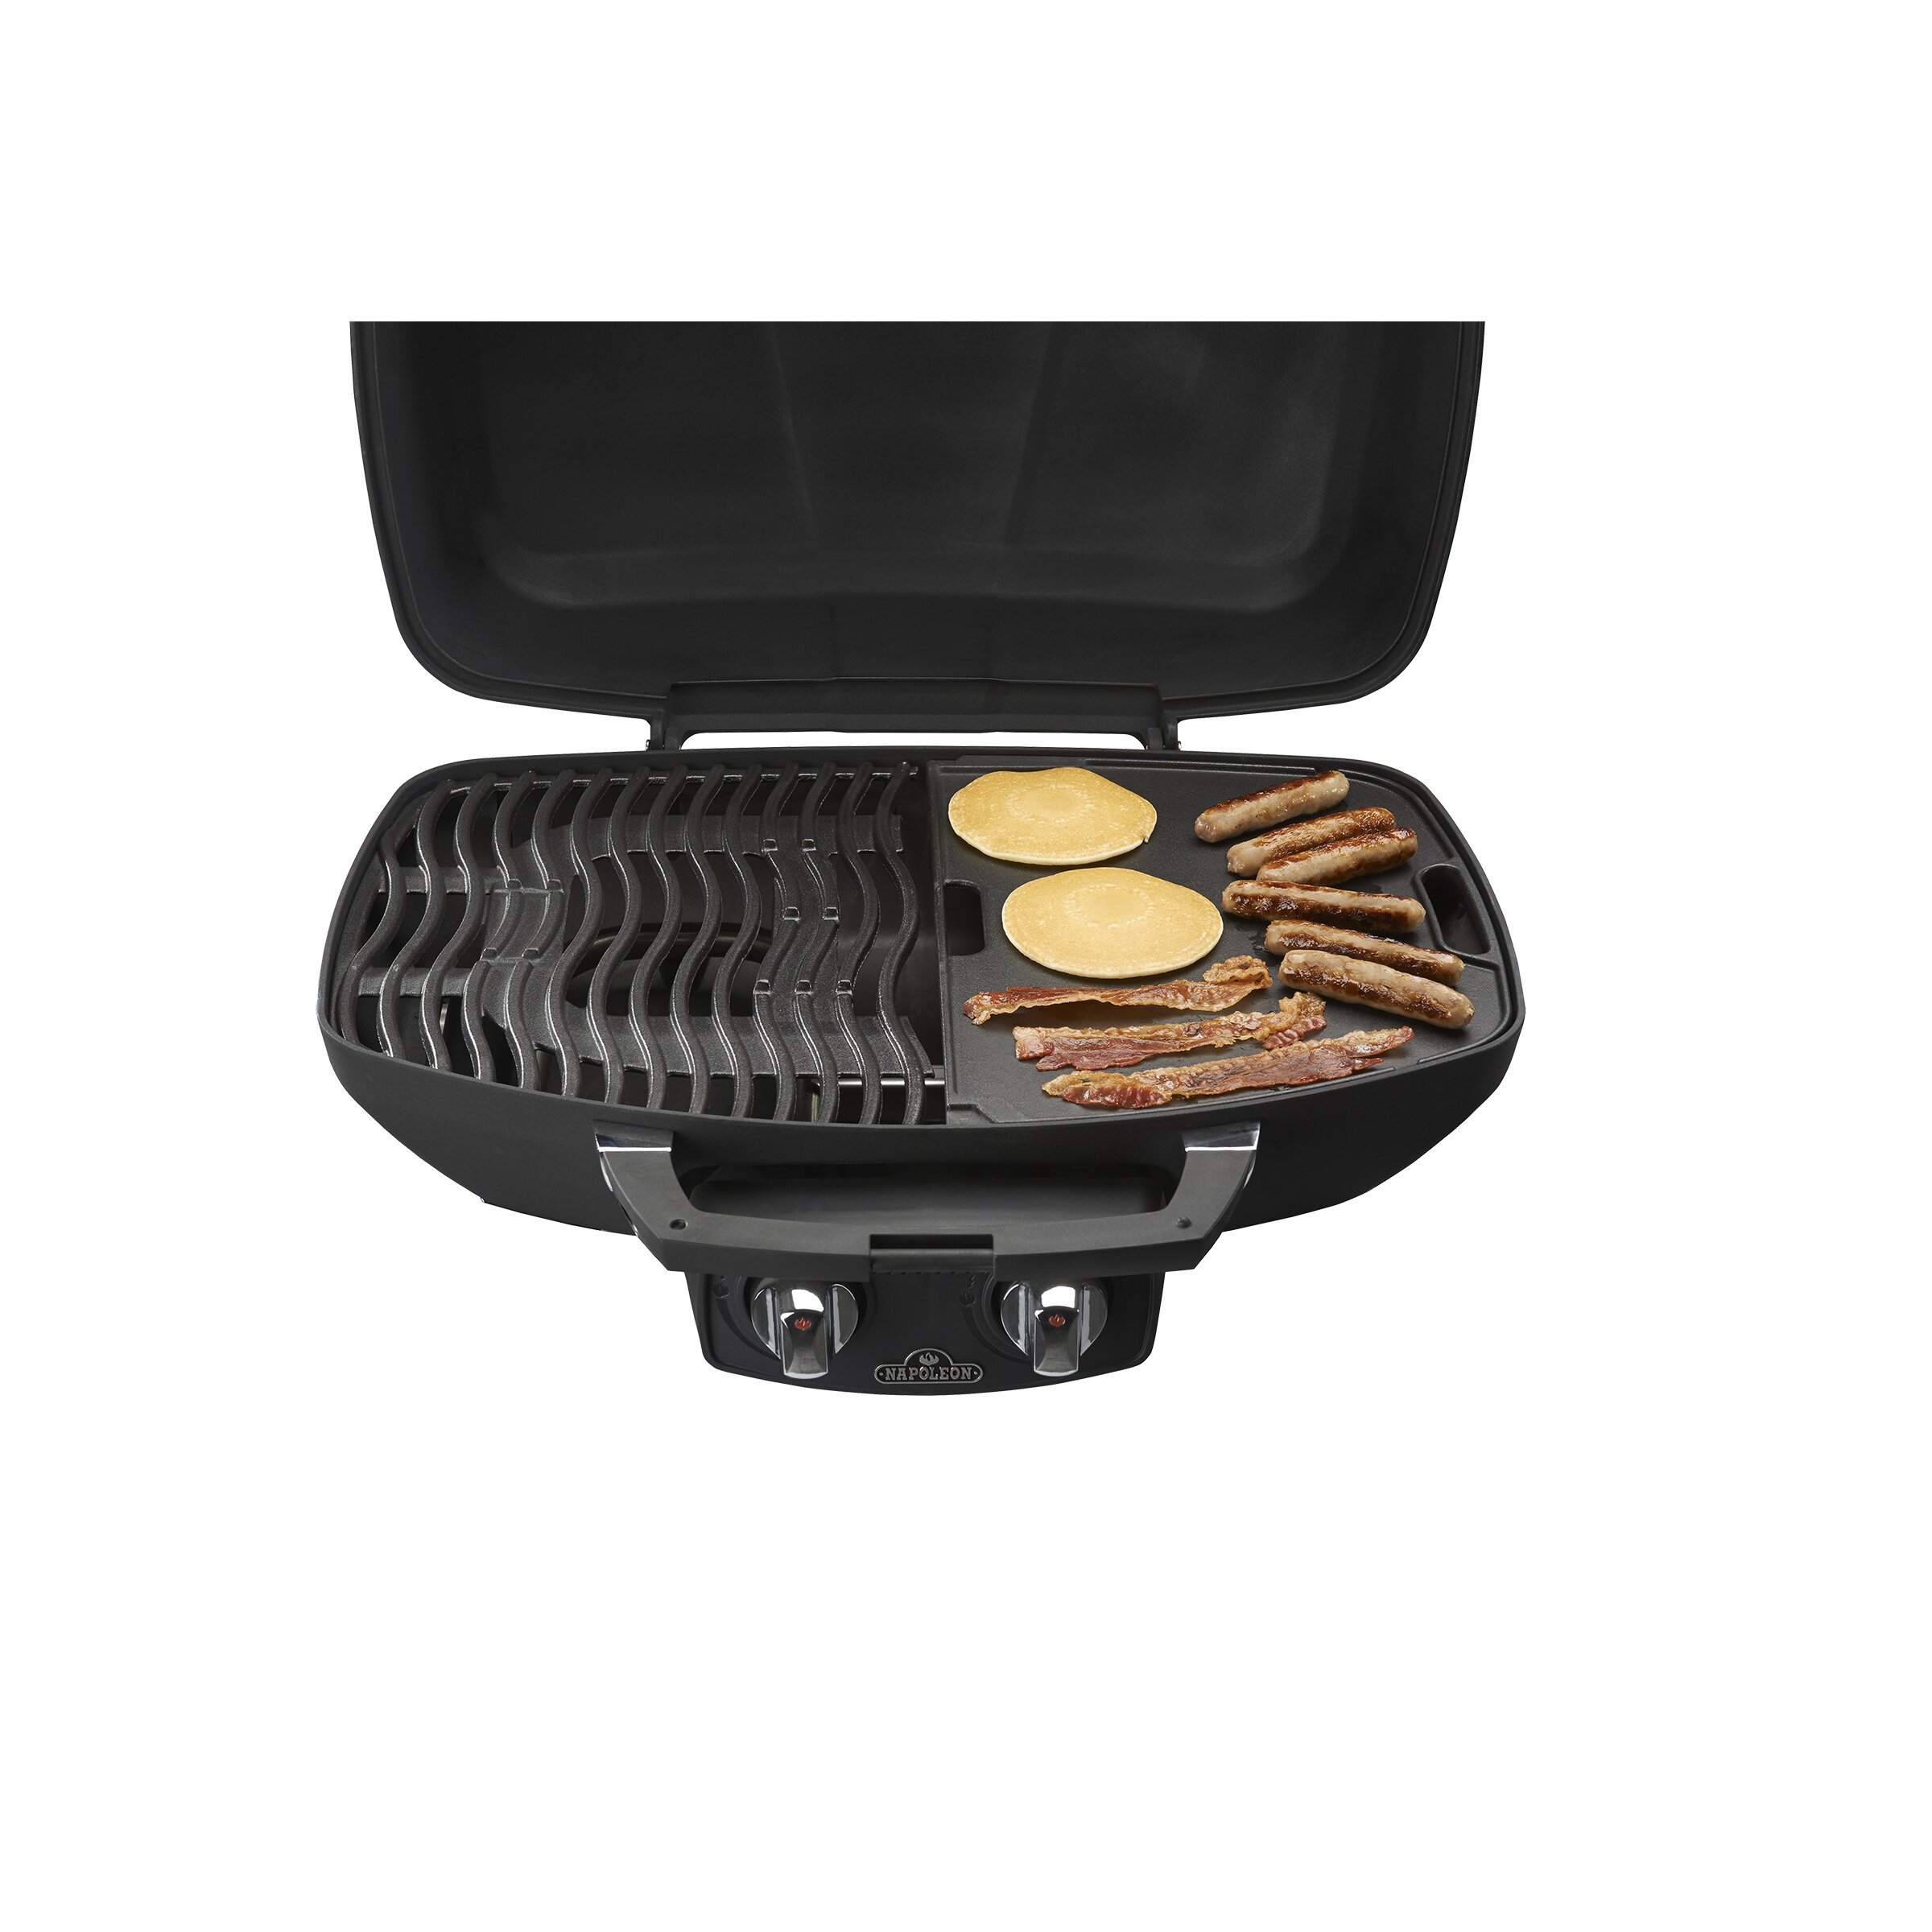 Napoleon Travel Q Cast Iron Reversible Grill Mat Wayfairca : Napoleon Travel Q Cast Iron Reversible Grill Mat from www.wayfair.ca size 2400 x 2400 jpeg 291kB